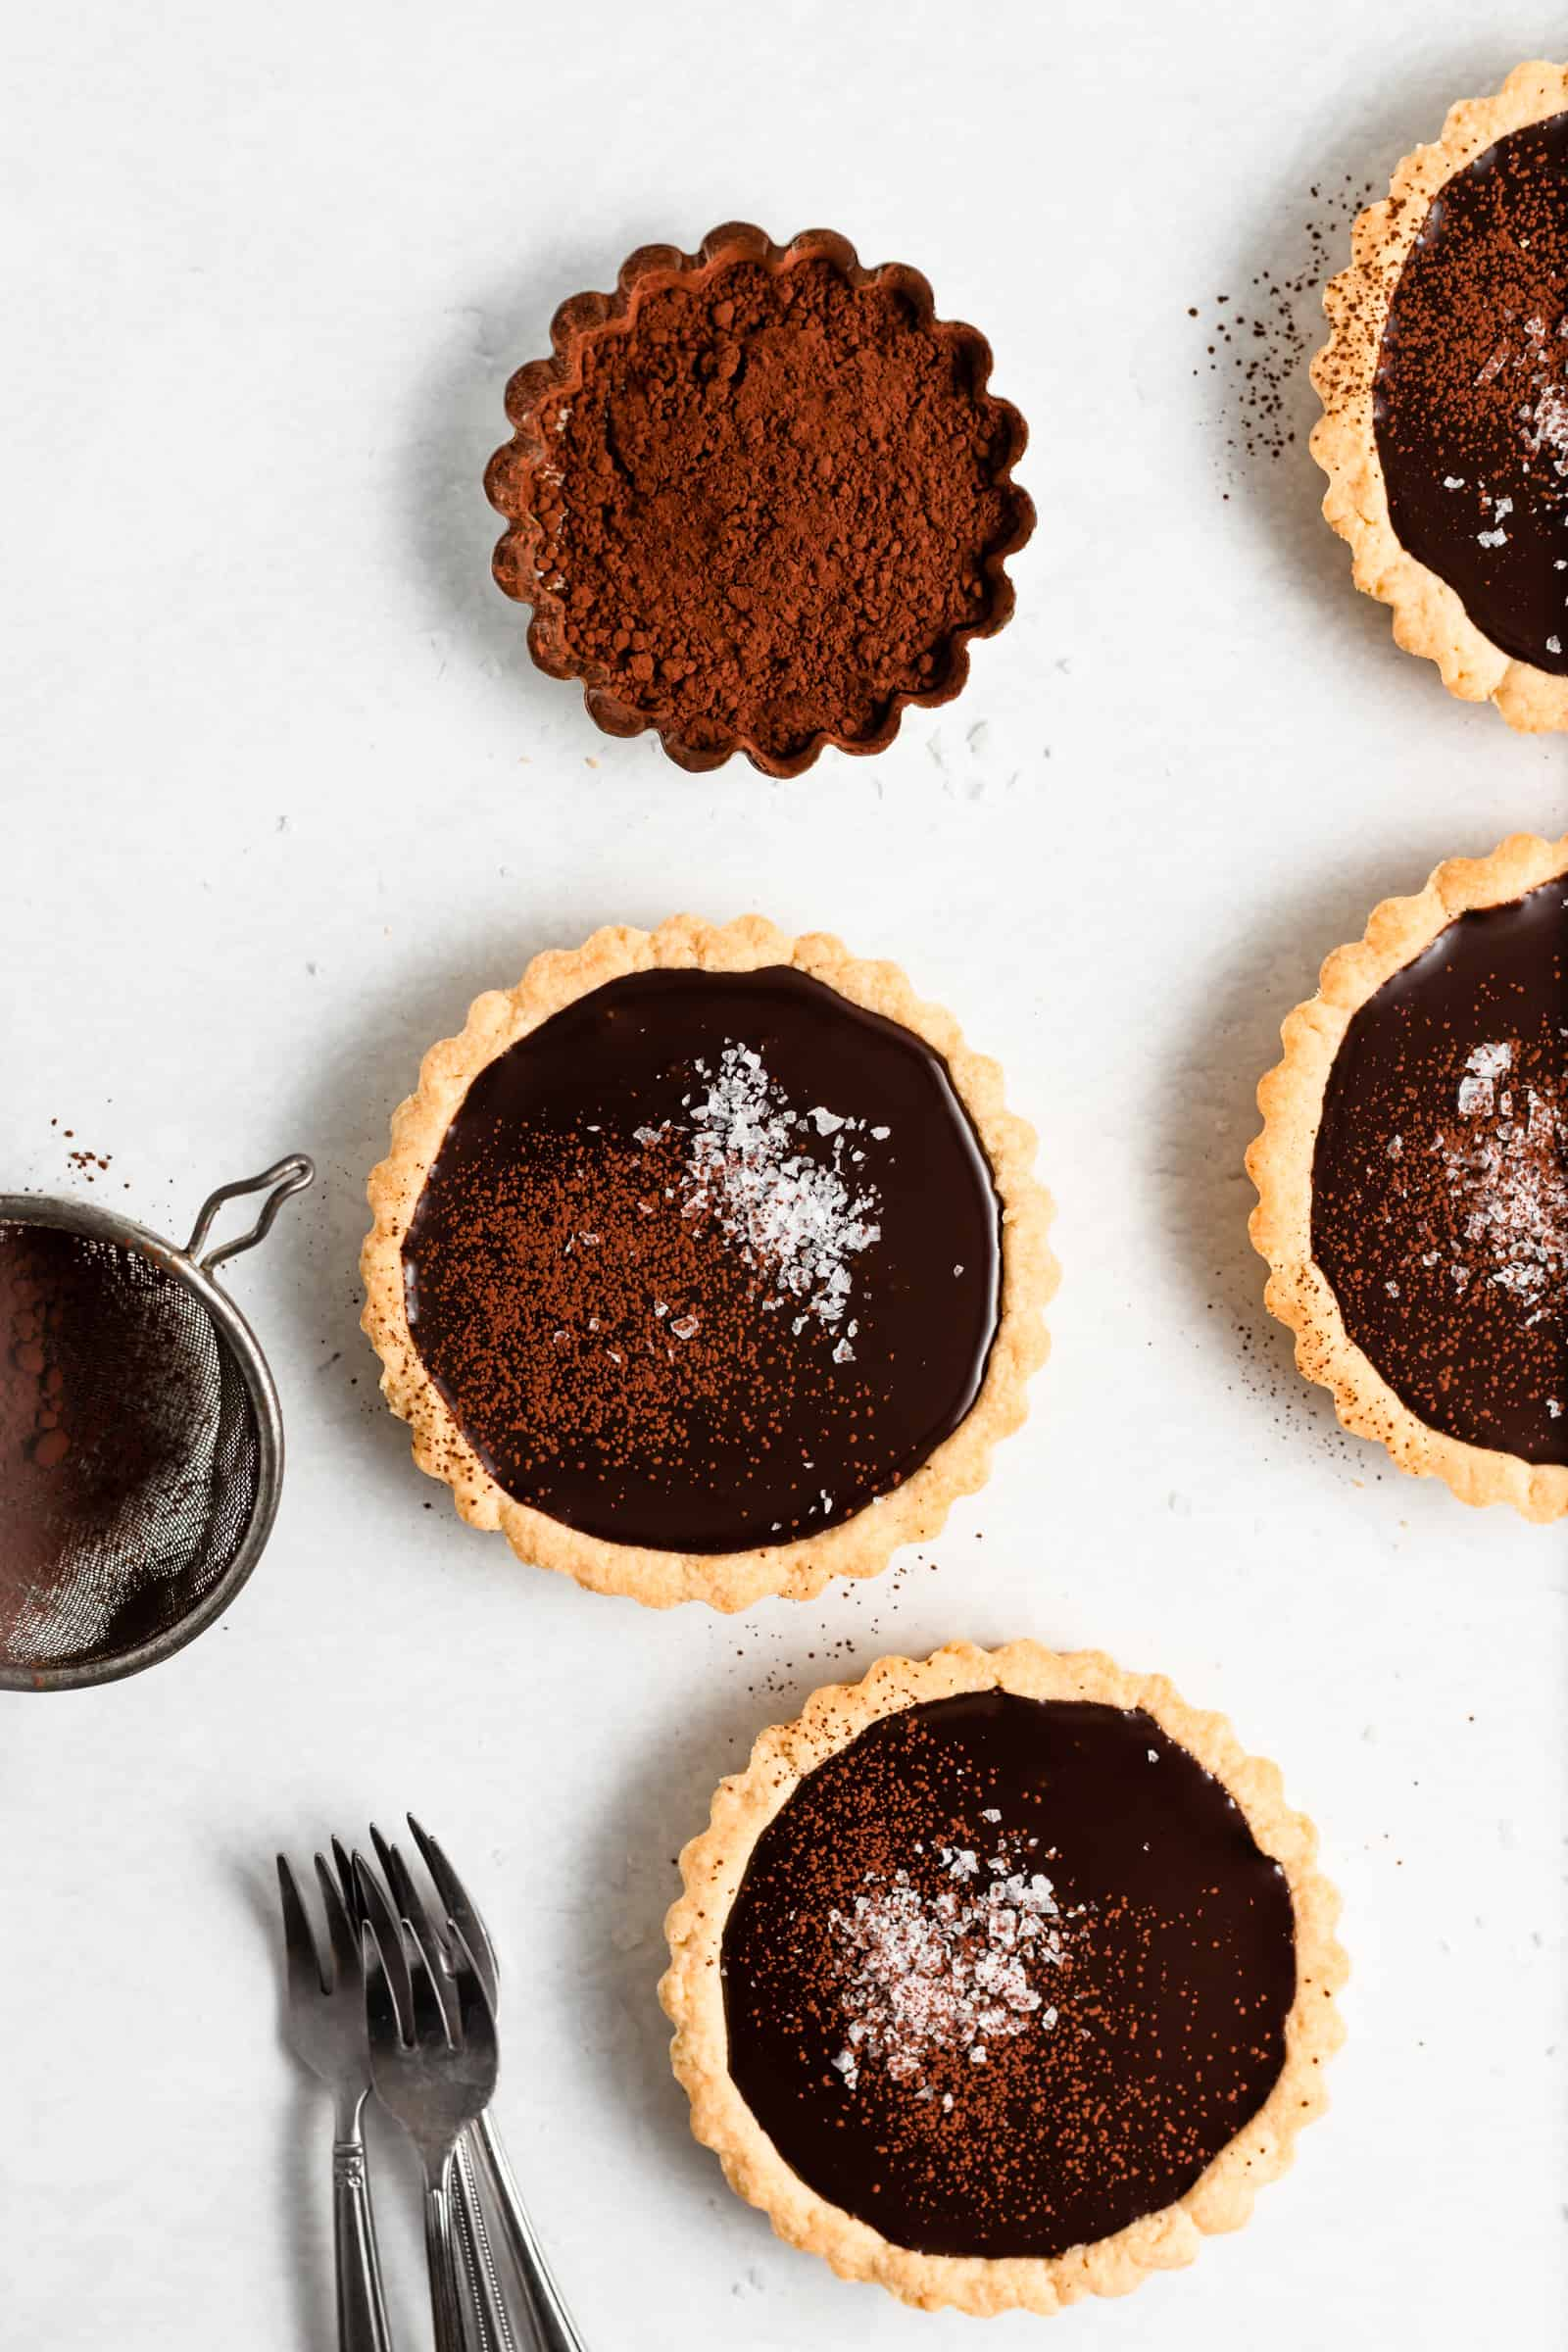 These Mini Dark Chocolate and Sea Salts Tarts have a buttery shortbread crust that's filled with a rich and decadent truffle-like filling and topped with sea salt!